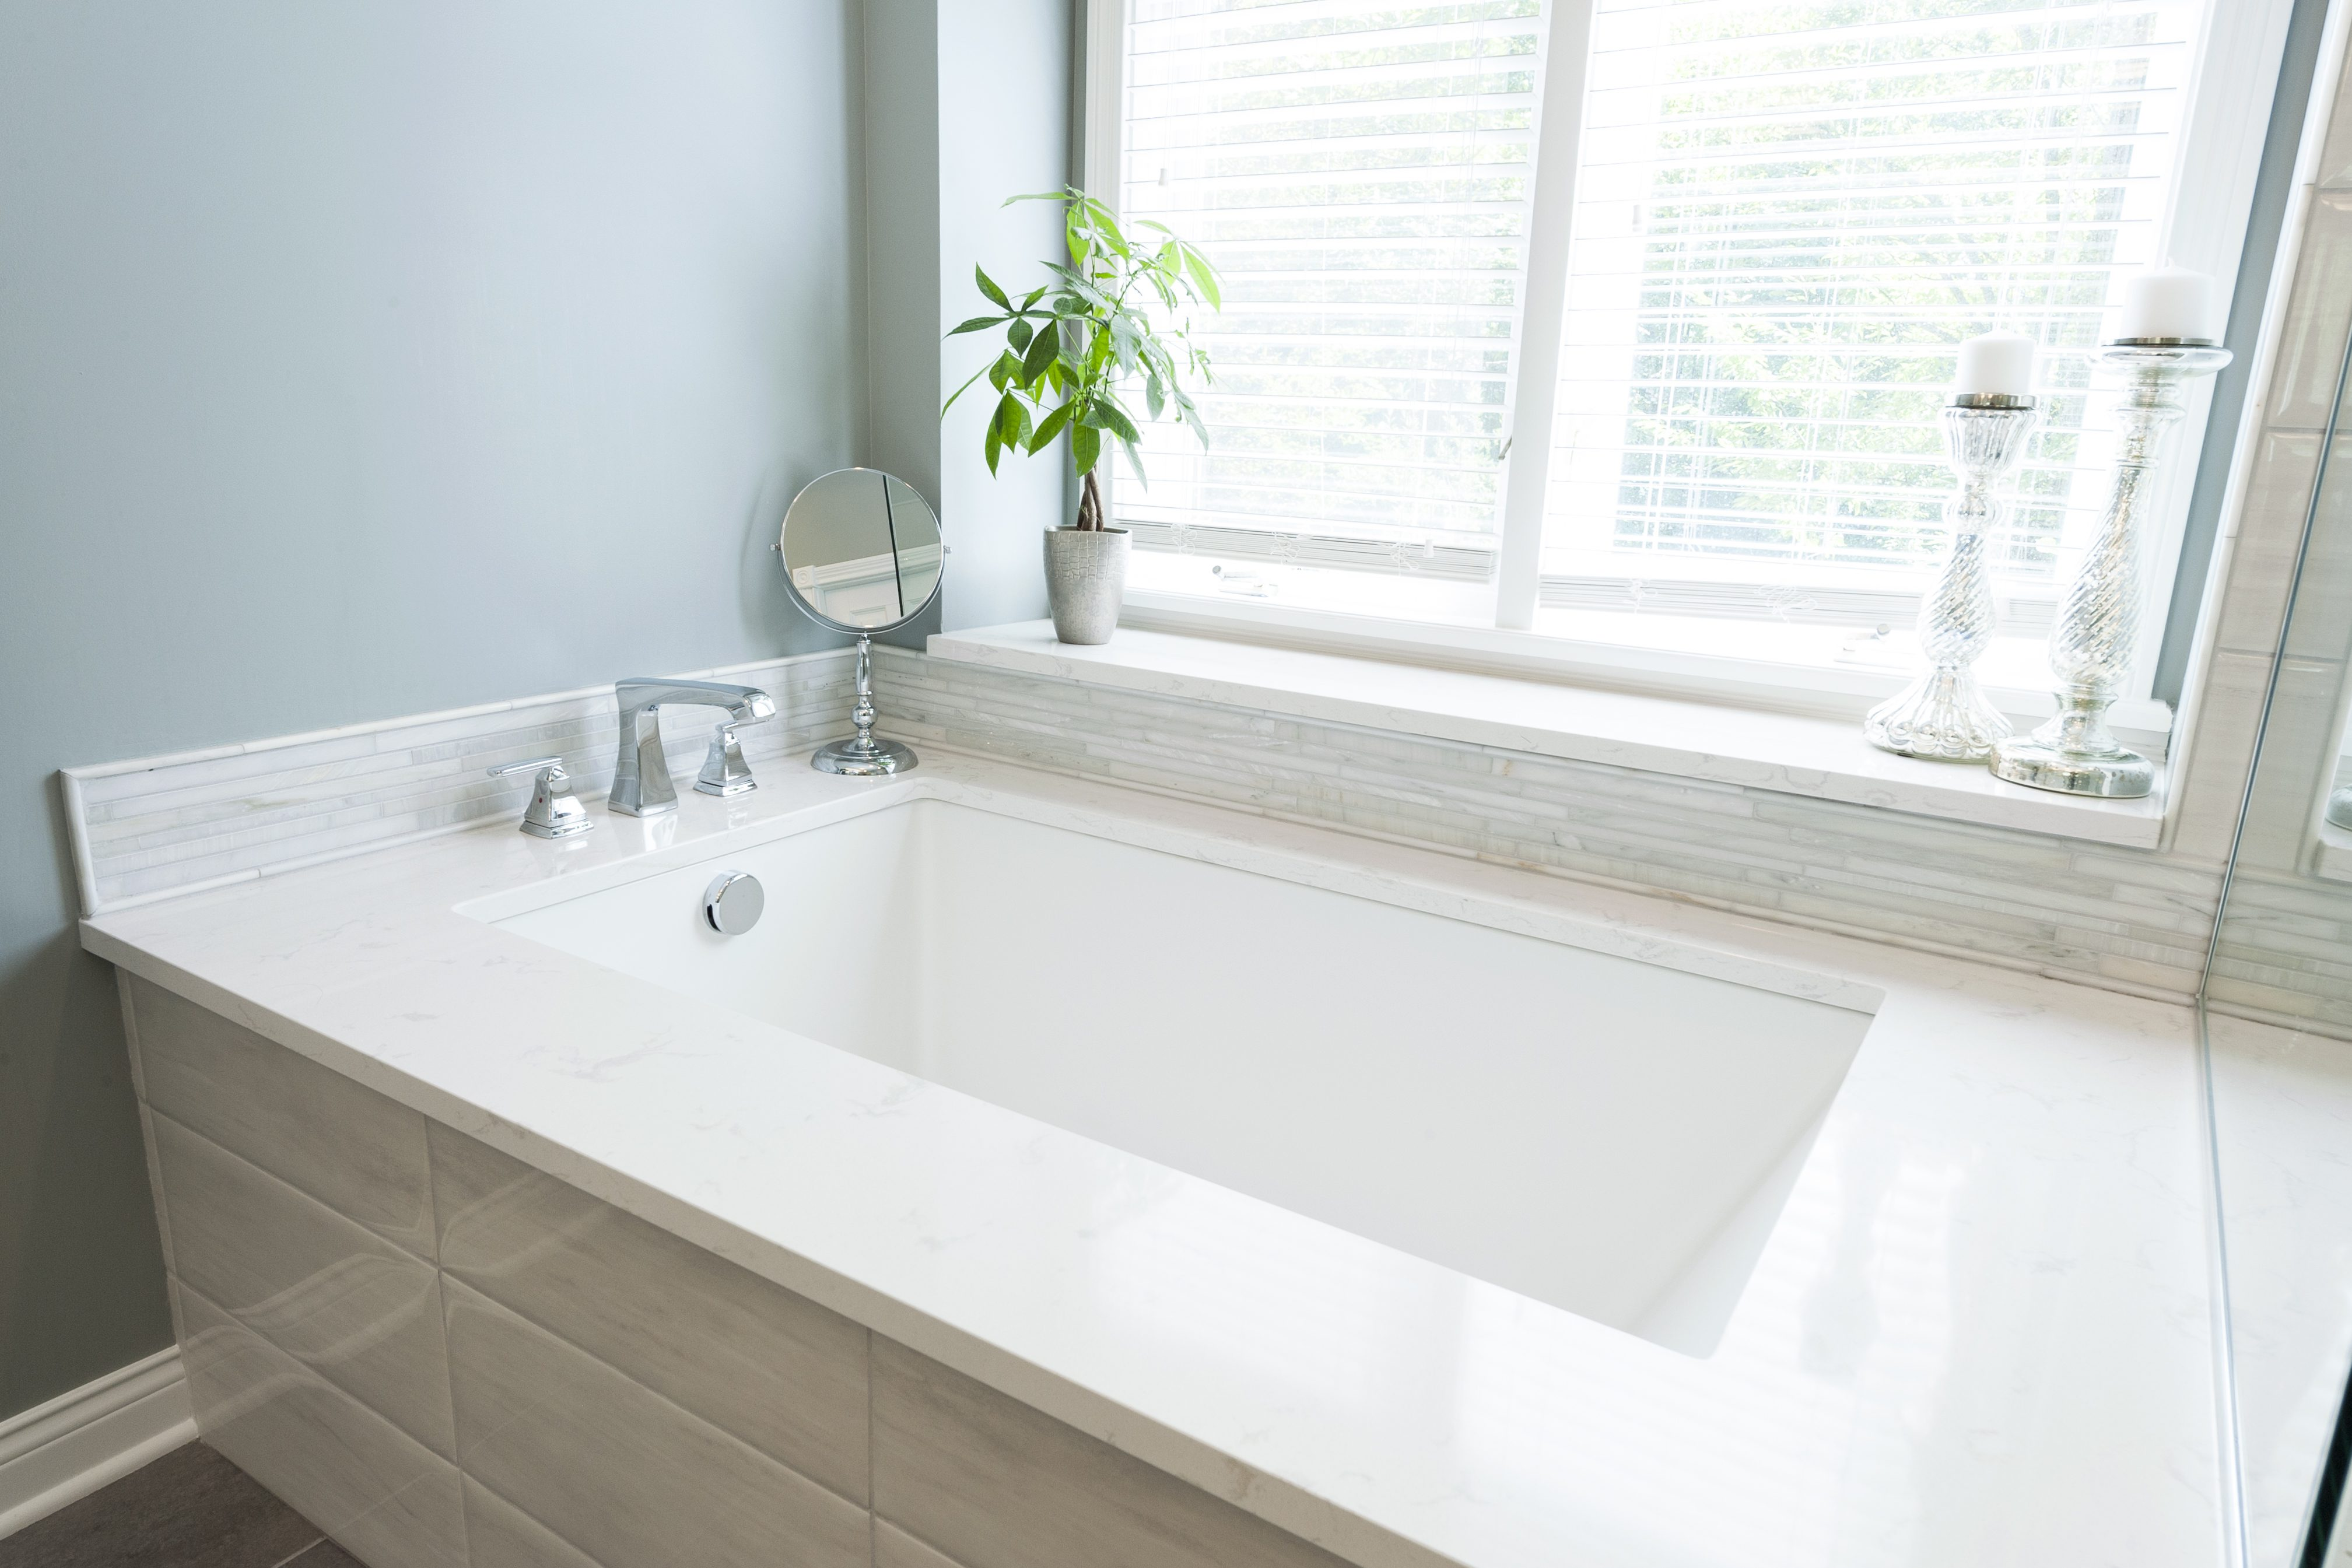 for beauty kimberly hydro click information undermount customized systems hydrosystems bathtub bathtubs shot more